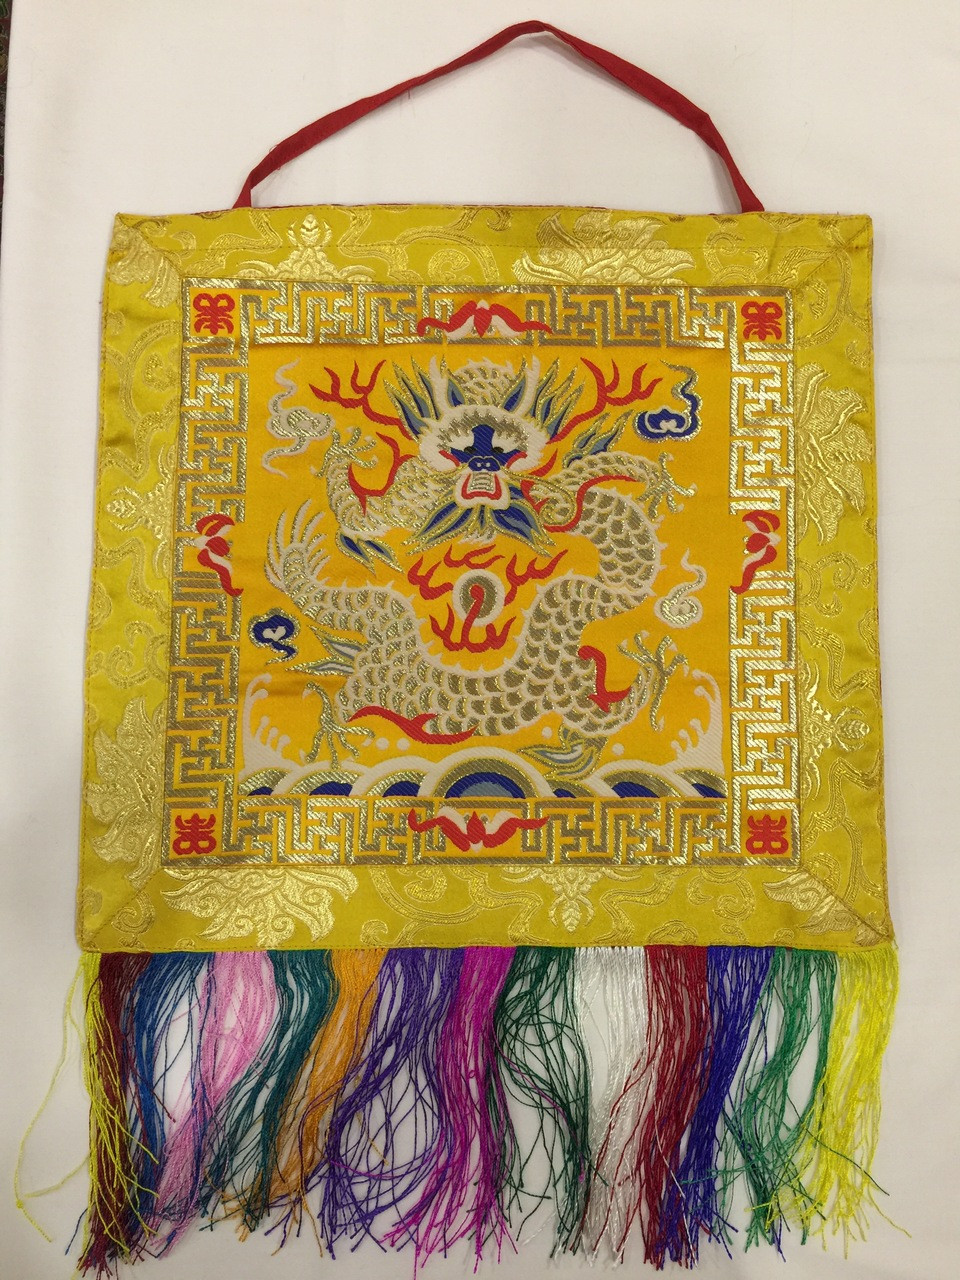 buddhist yellow protector dragon wall hanging / banner / thangka